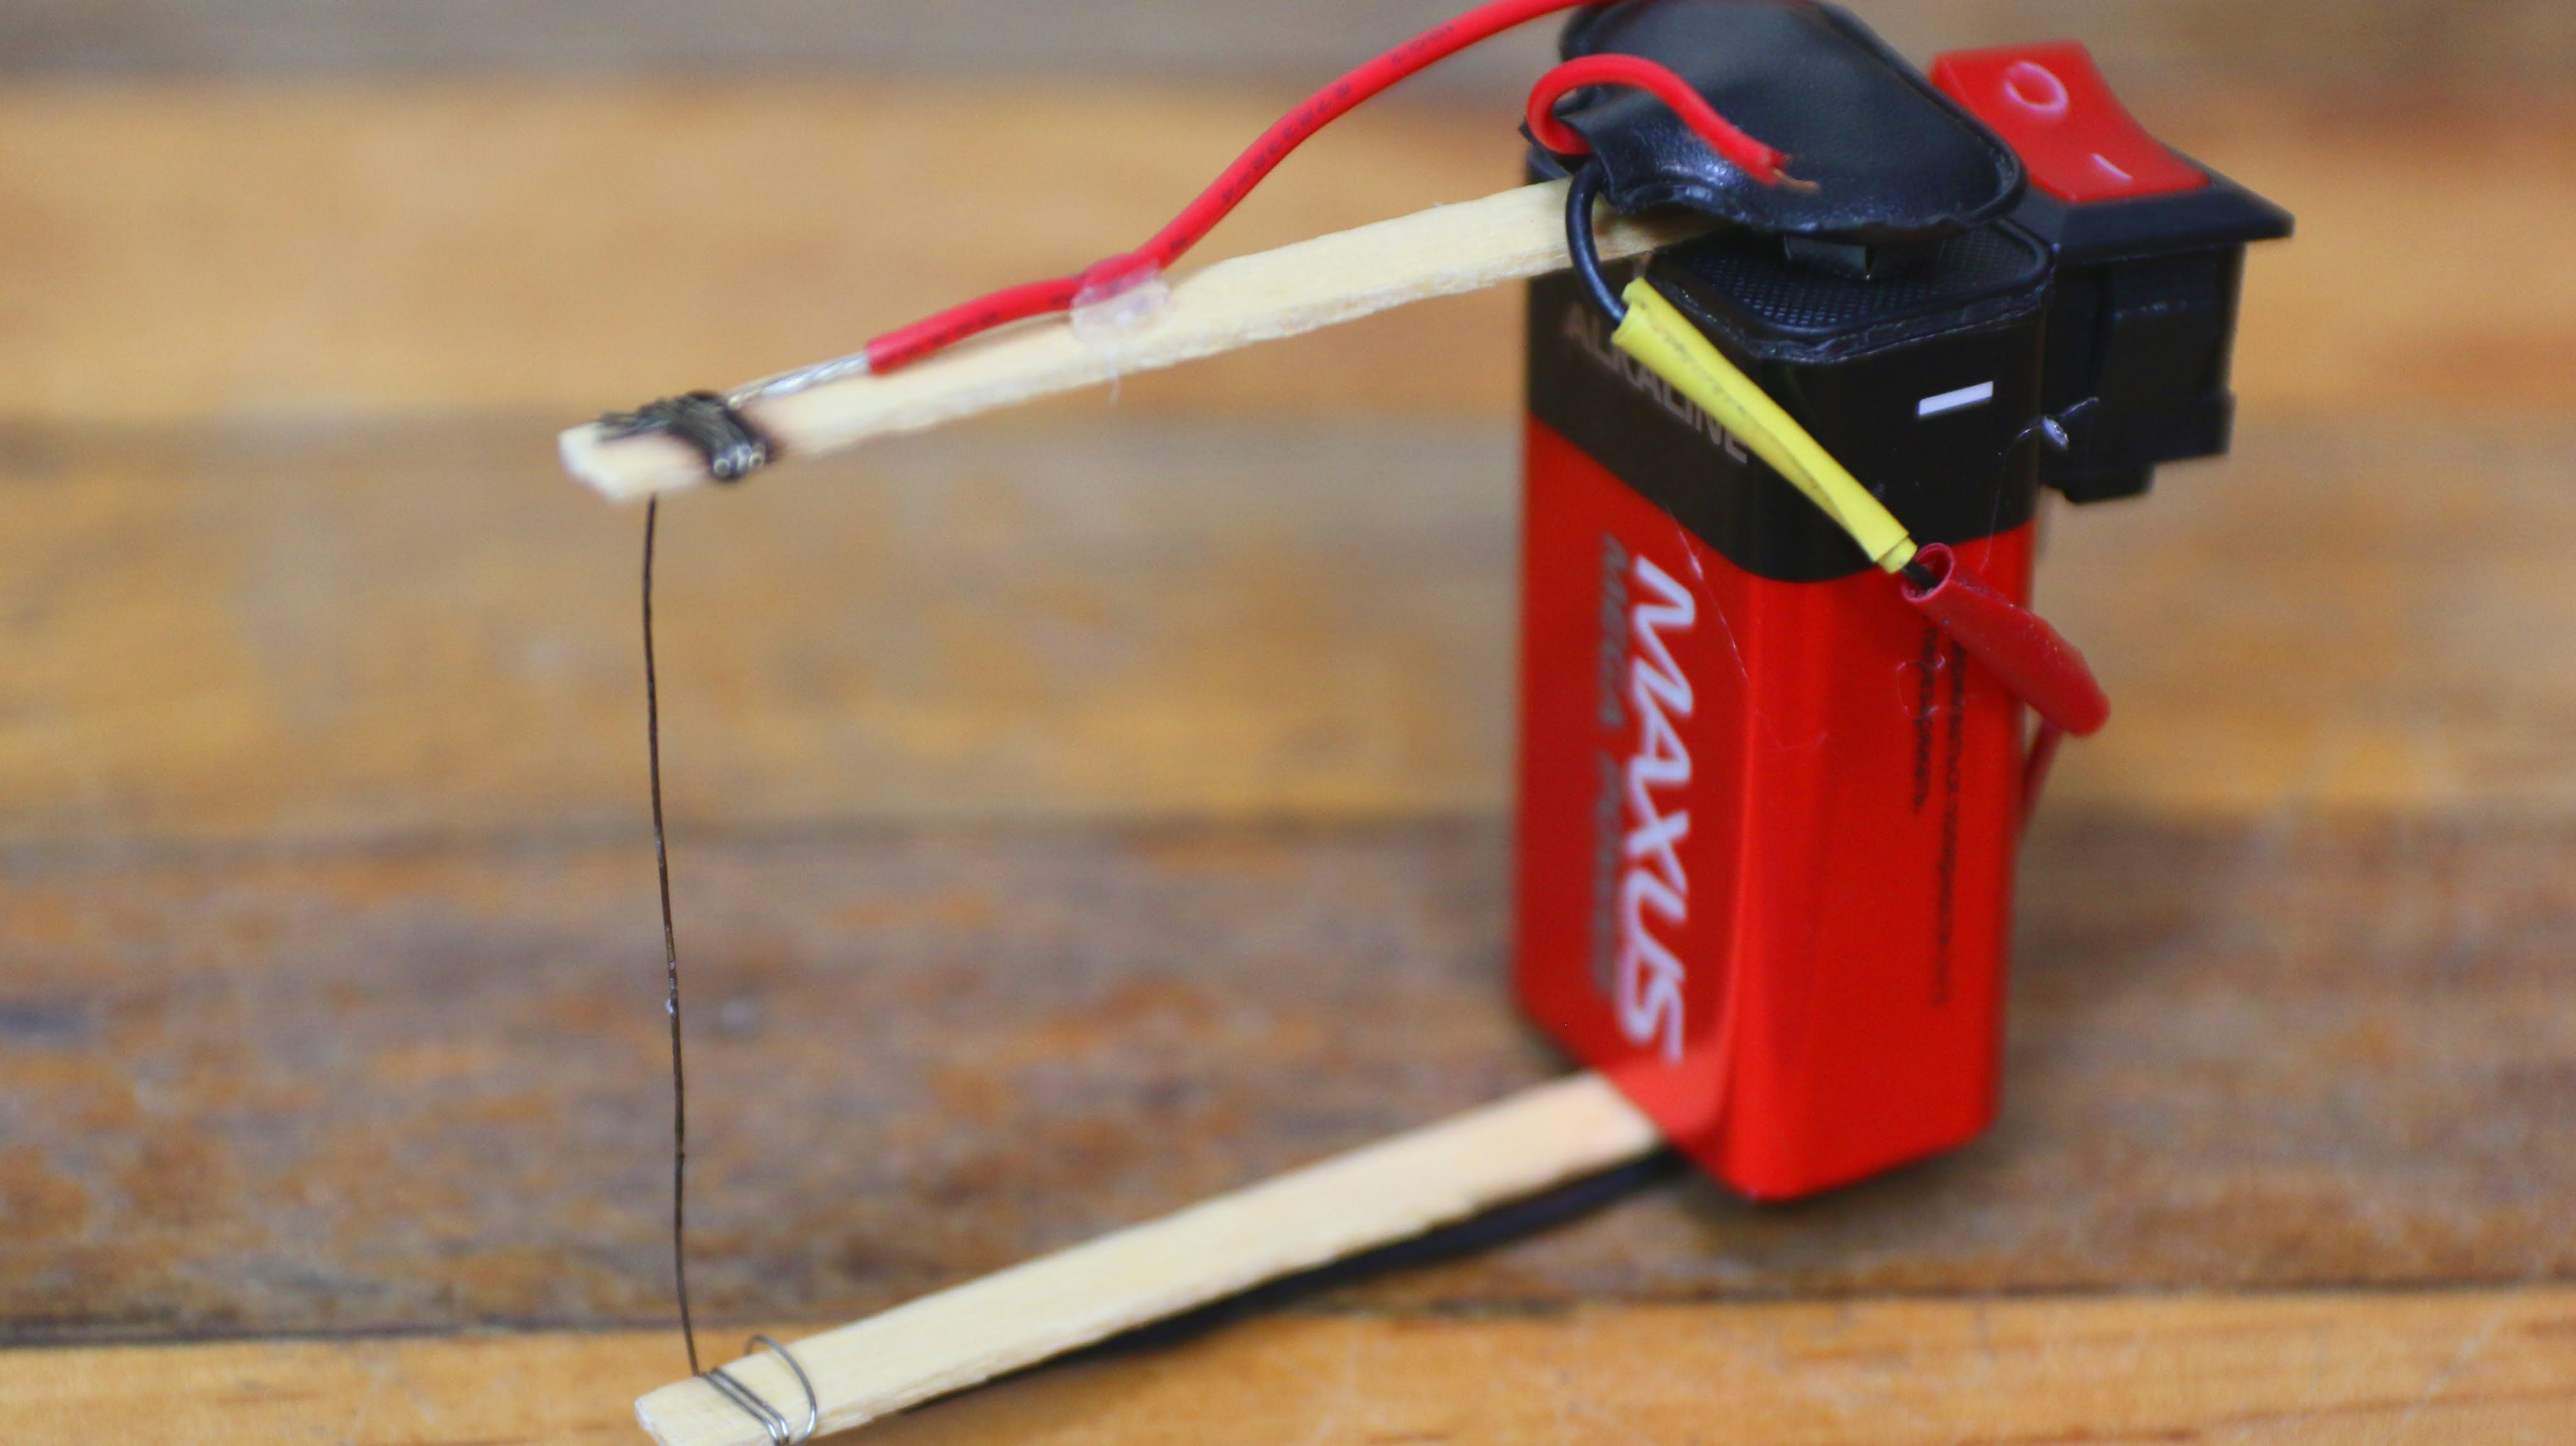 medium resolution of how to build a simple diy plastic foam cutter using a nine volt battery and some wire